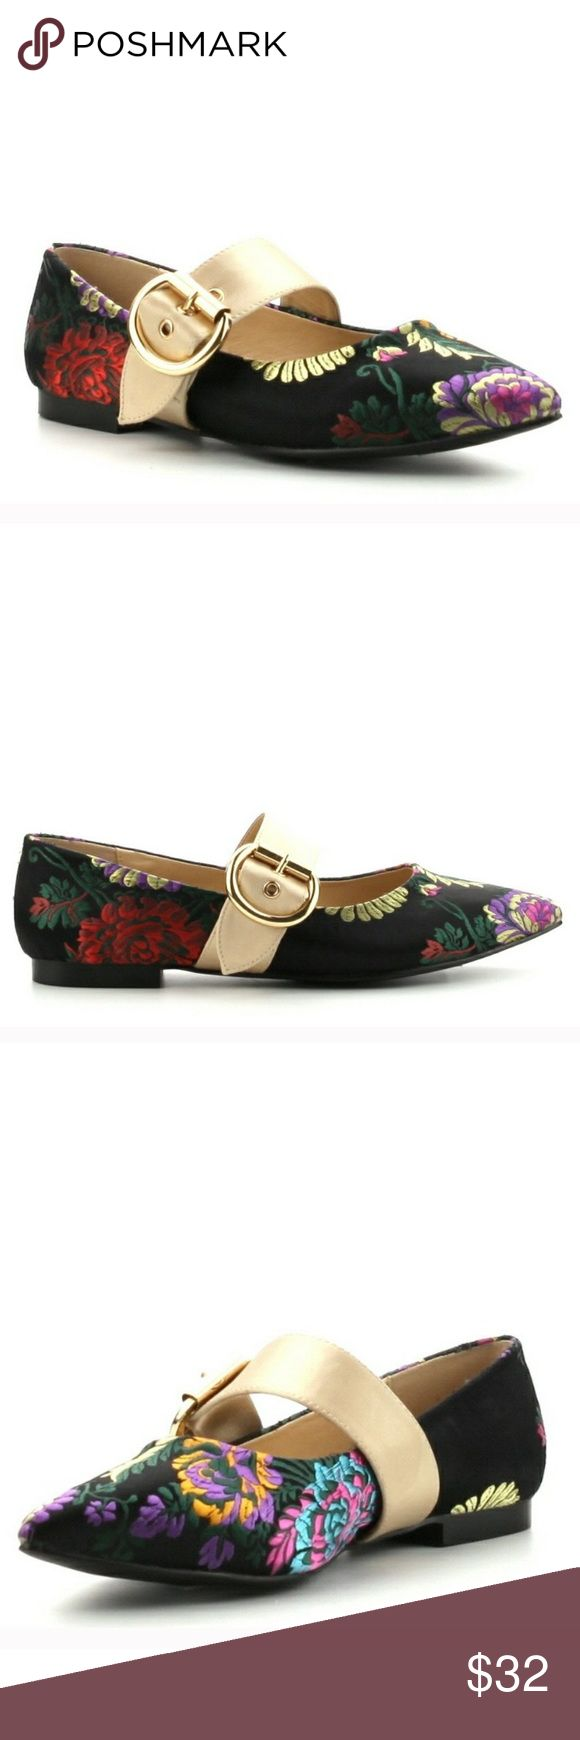 Embroidery Deep Black Chinese Baby Doll Flat Extravagant Embroidery on this Flat very Chic and Trendy looking, you can wear it with anything Very Chic to show if it's a U.K. Style Shoes Flats & Loafers